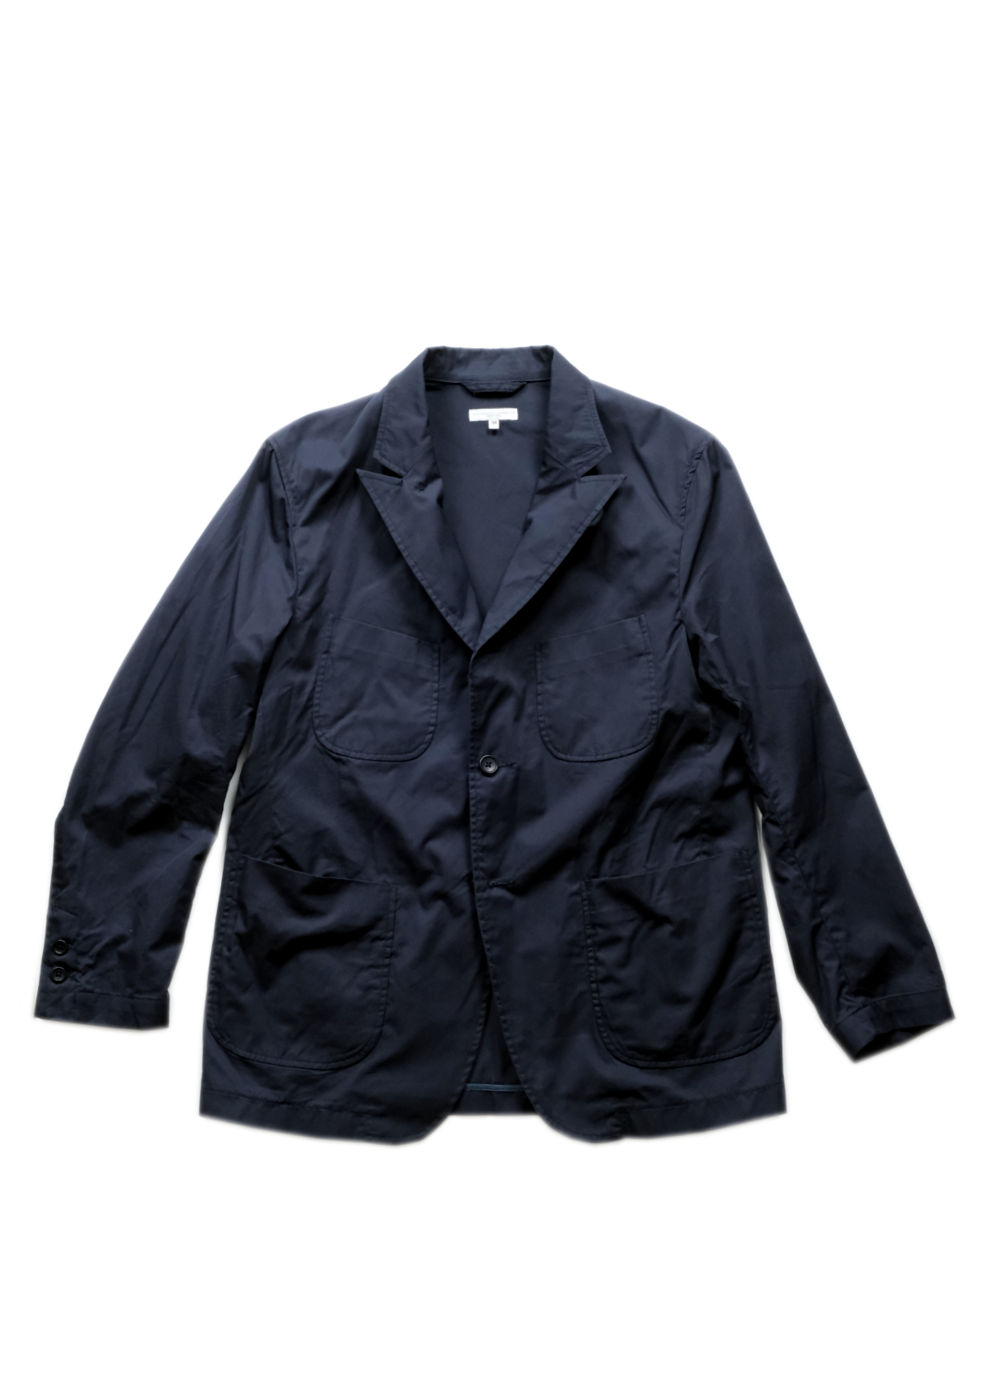 Engineered-Garments-NB-Jacket-Dark-Navy-High-Count-Twill-01